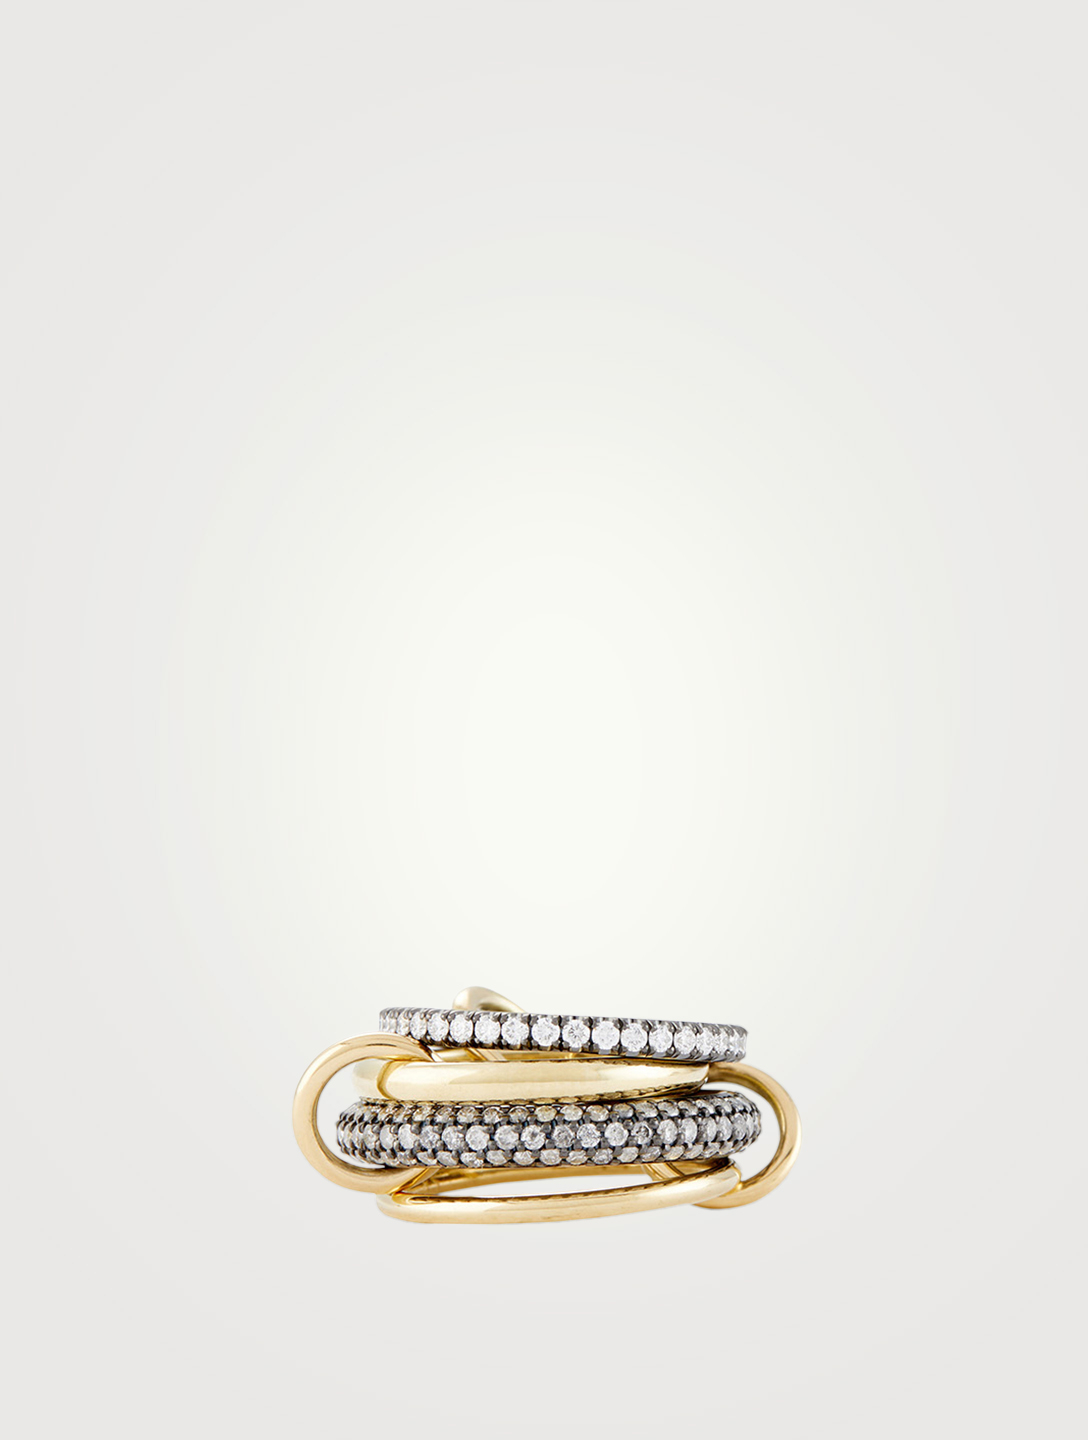 SPINELLI KILCOLLIN Vega 18K Gold And Black Rhodium-Plated Silver Linked Ring With Diamonds Women's Multi